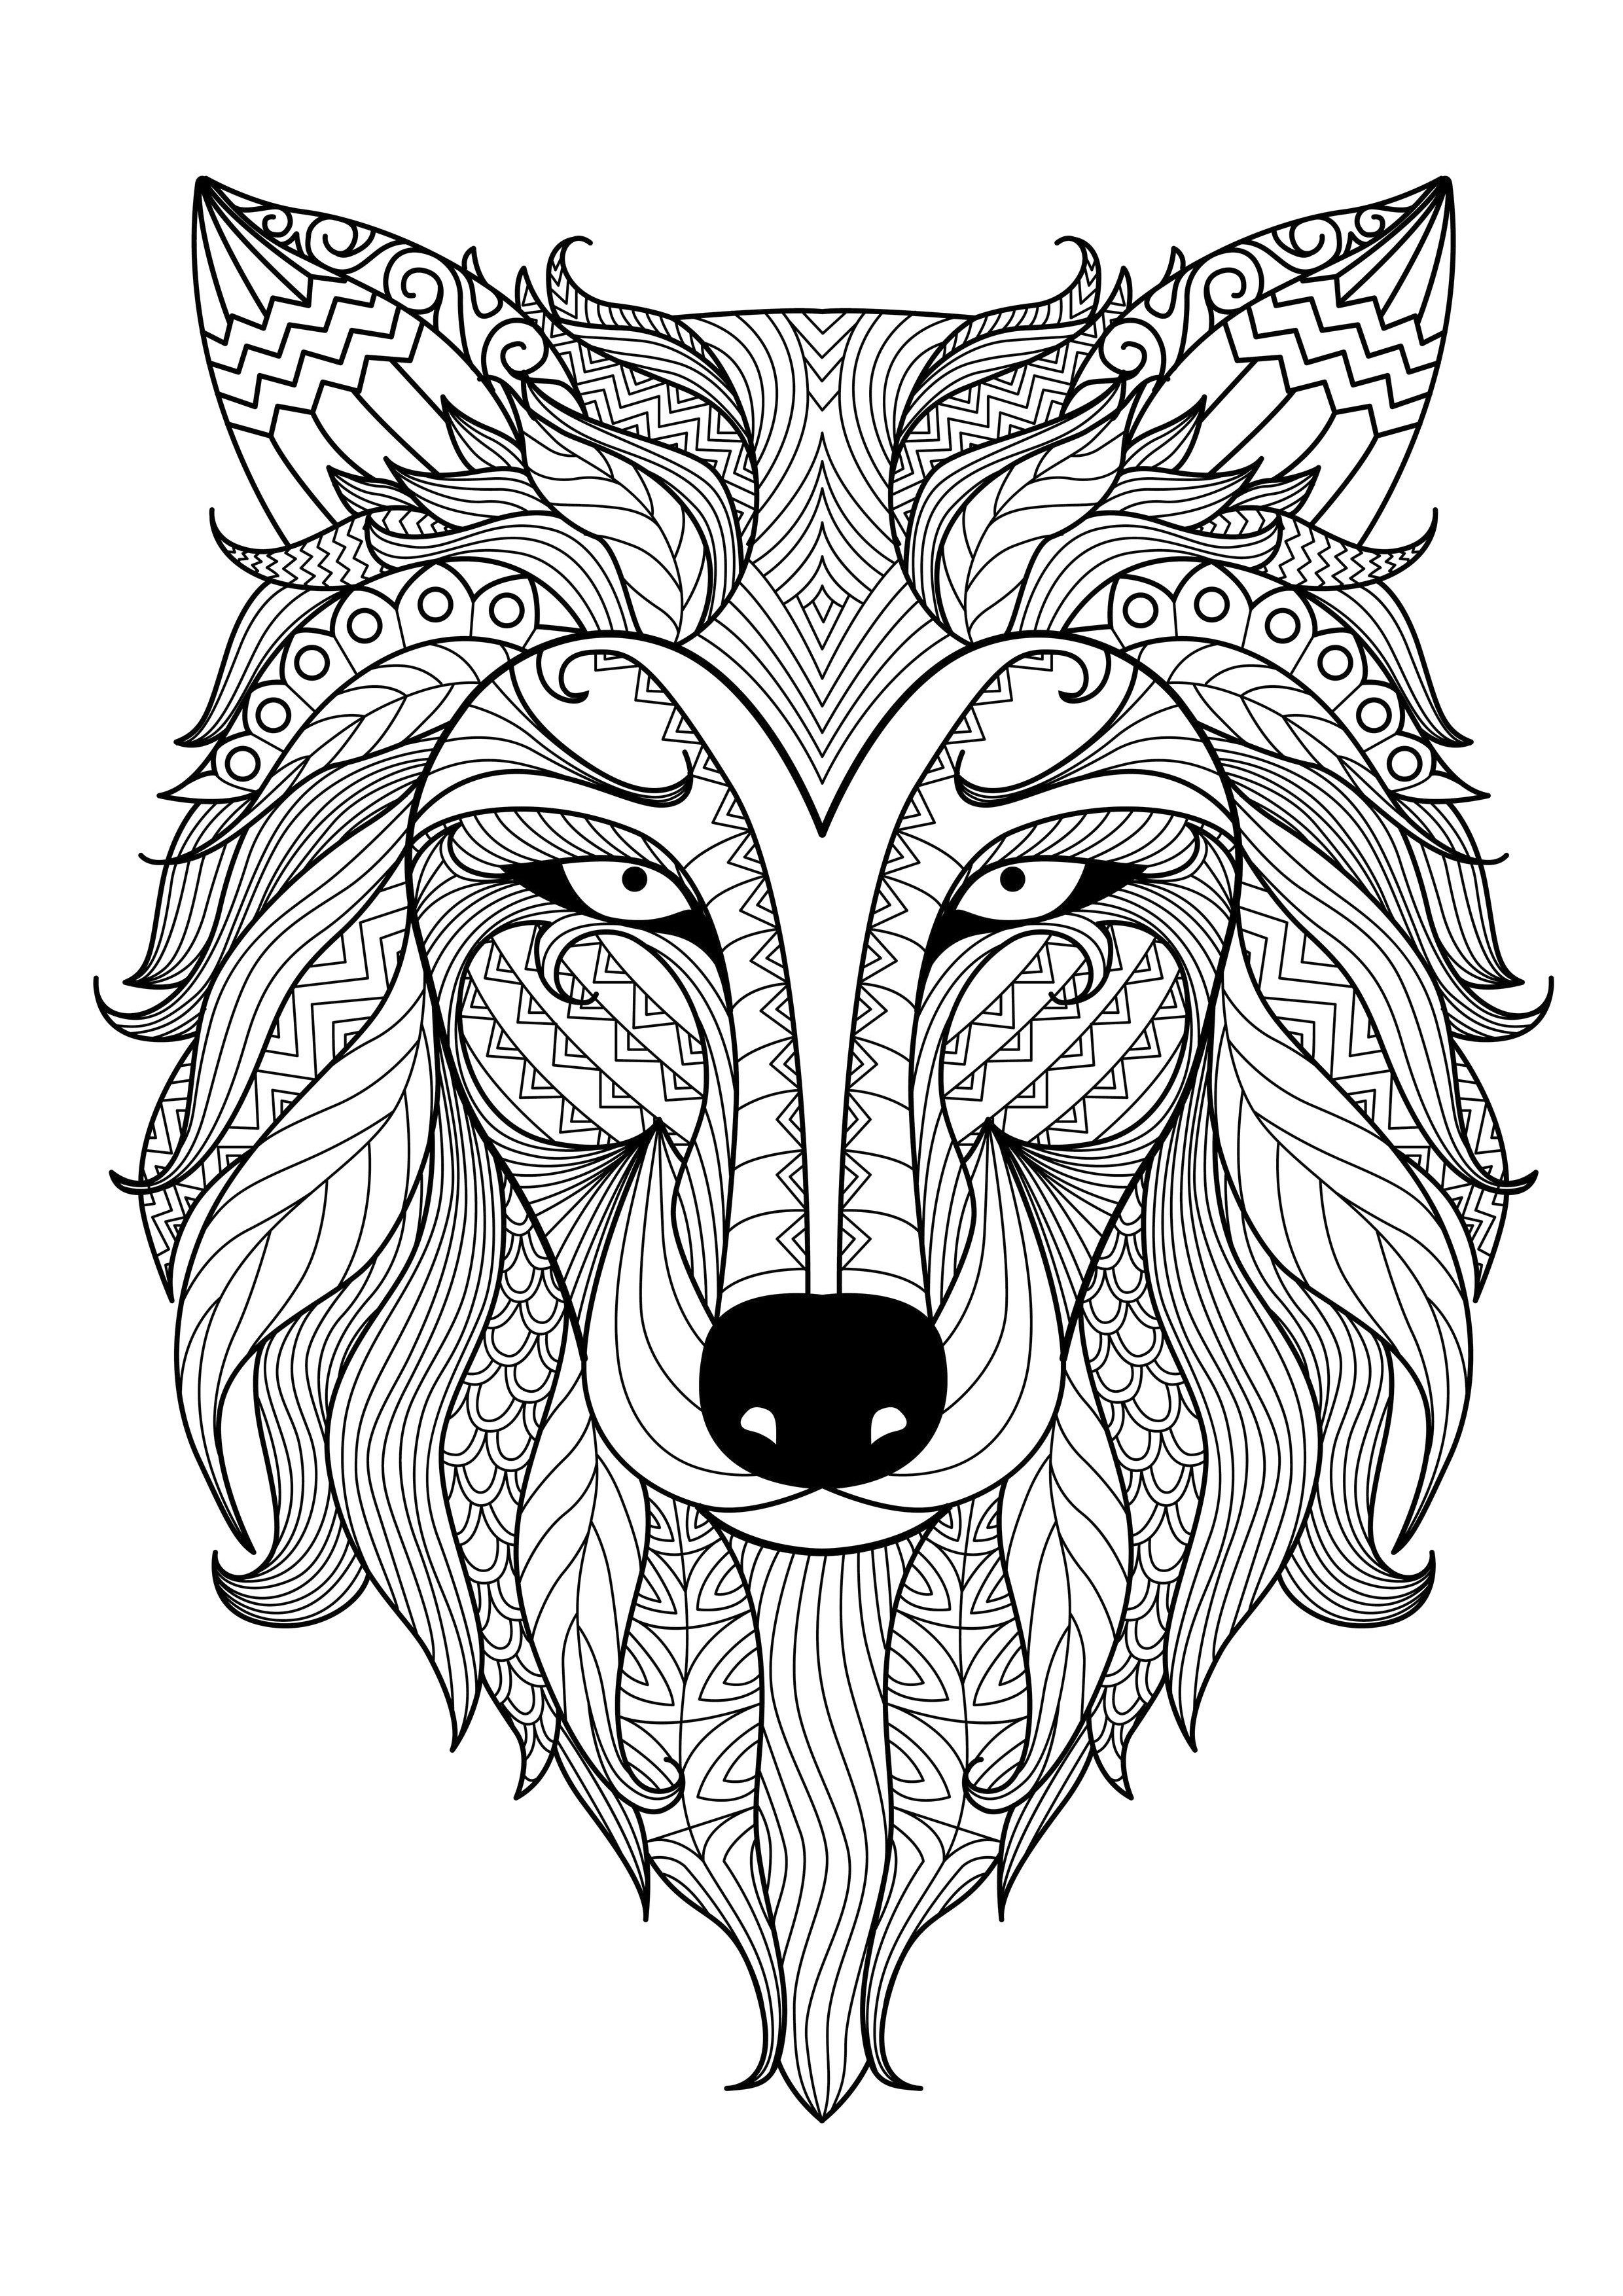 Adult Coloring Pages Wolves : adult, coloring, pages, wolves, Adult, Coloring, Pages:, Mandala, Pages,, Printable, Pages